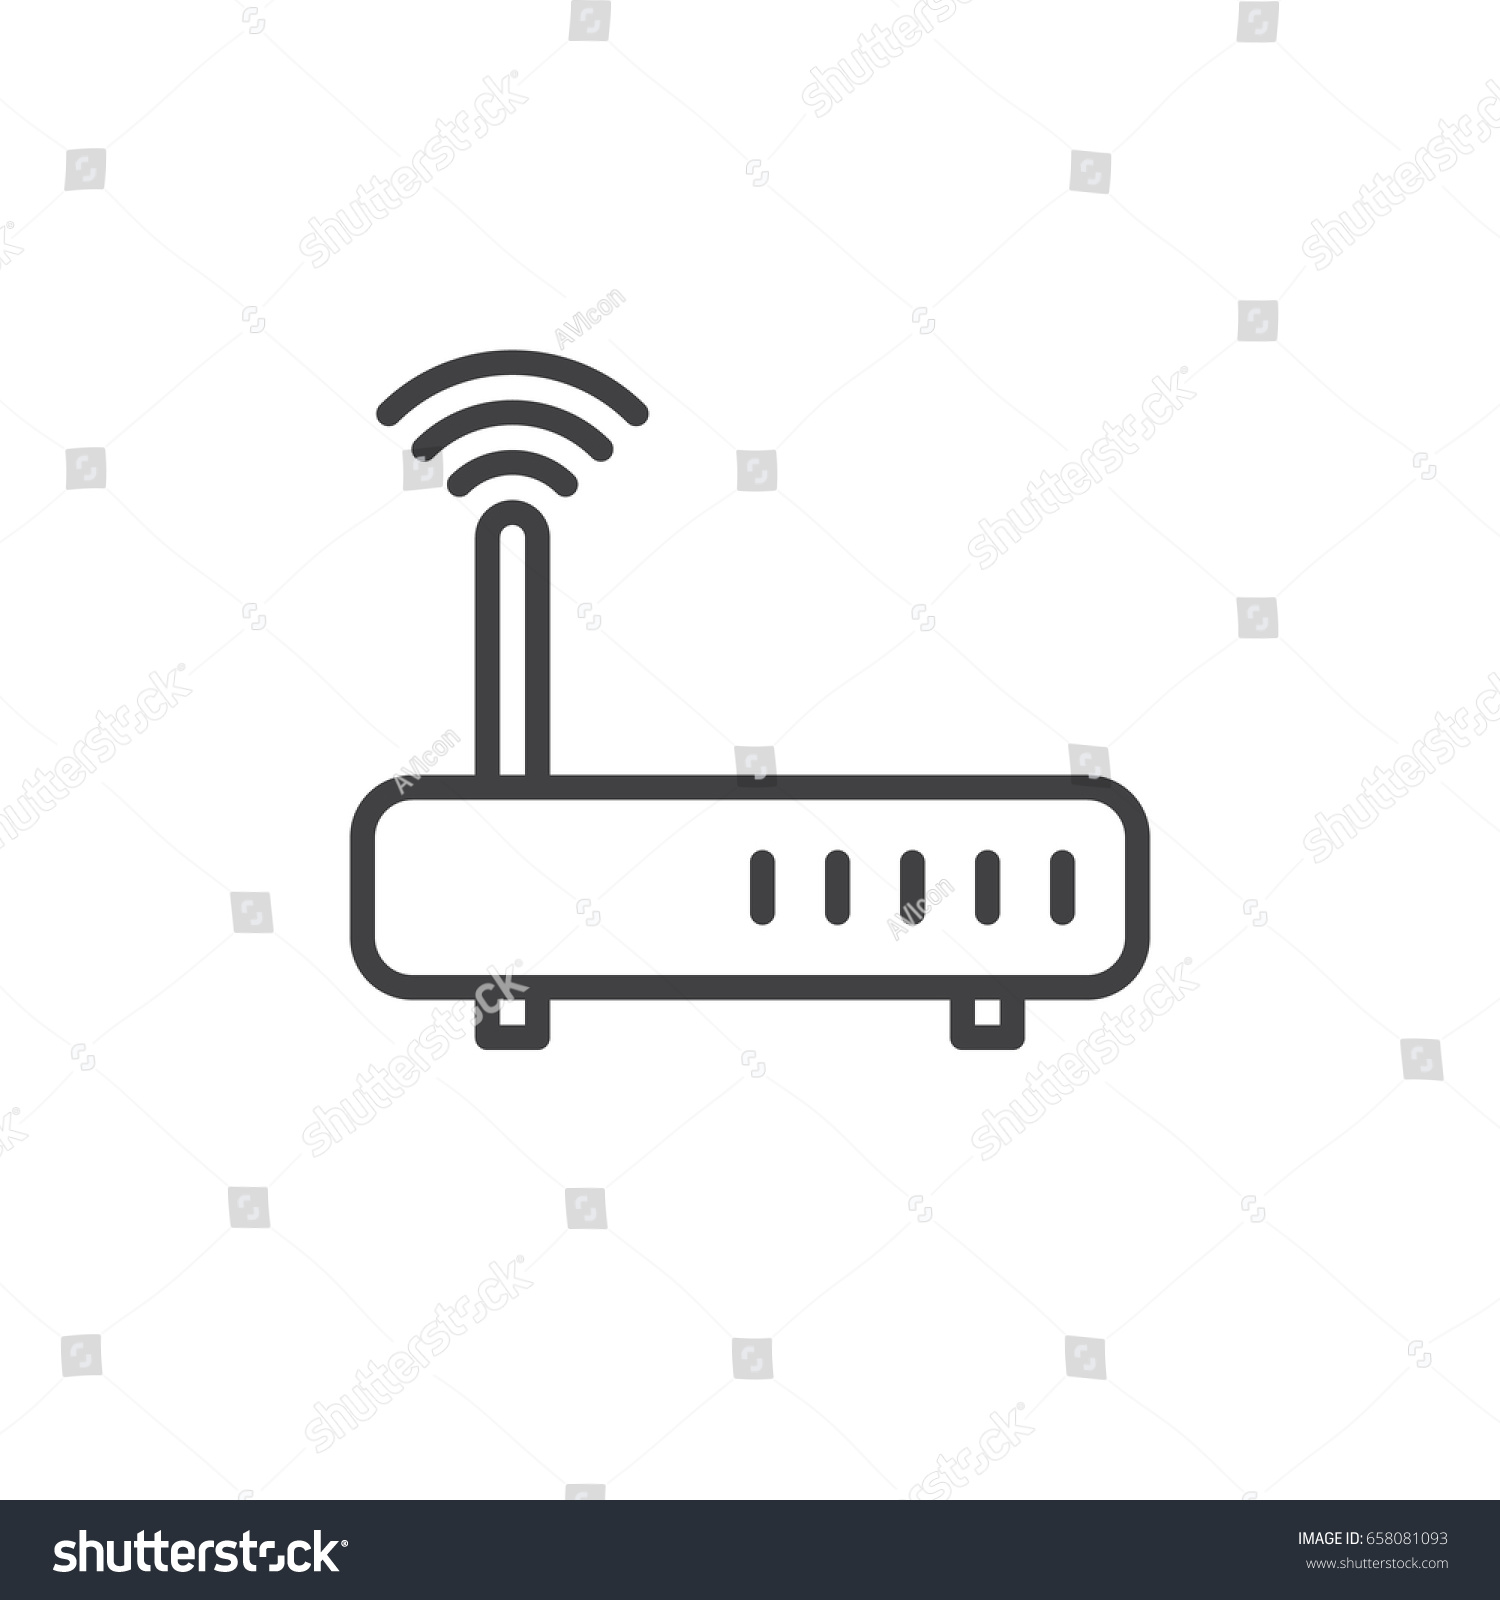 Wifi Internet Router Line Icon Outline Stock Vector Royalty Free